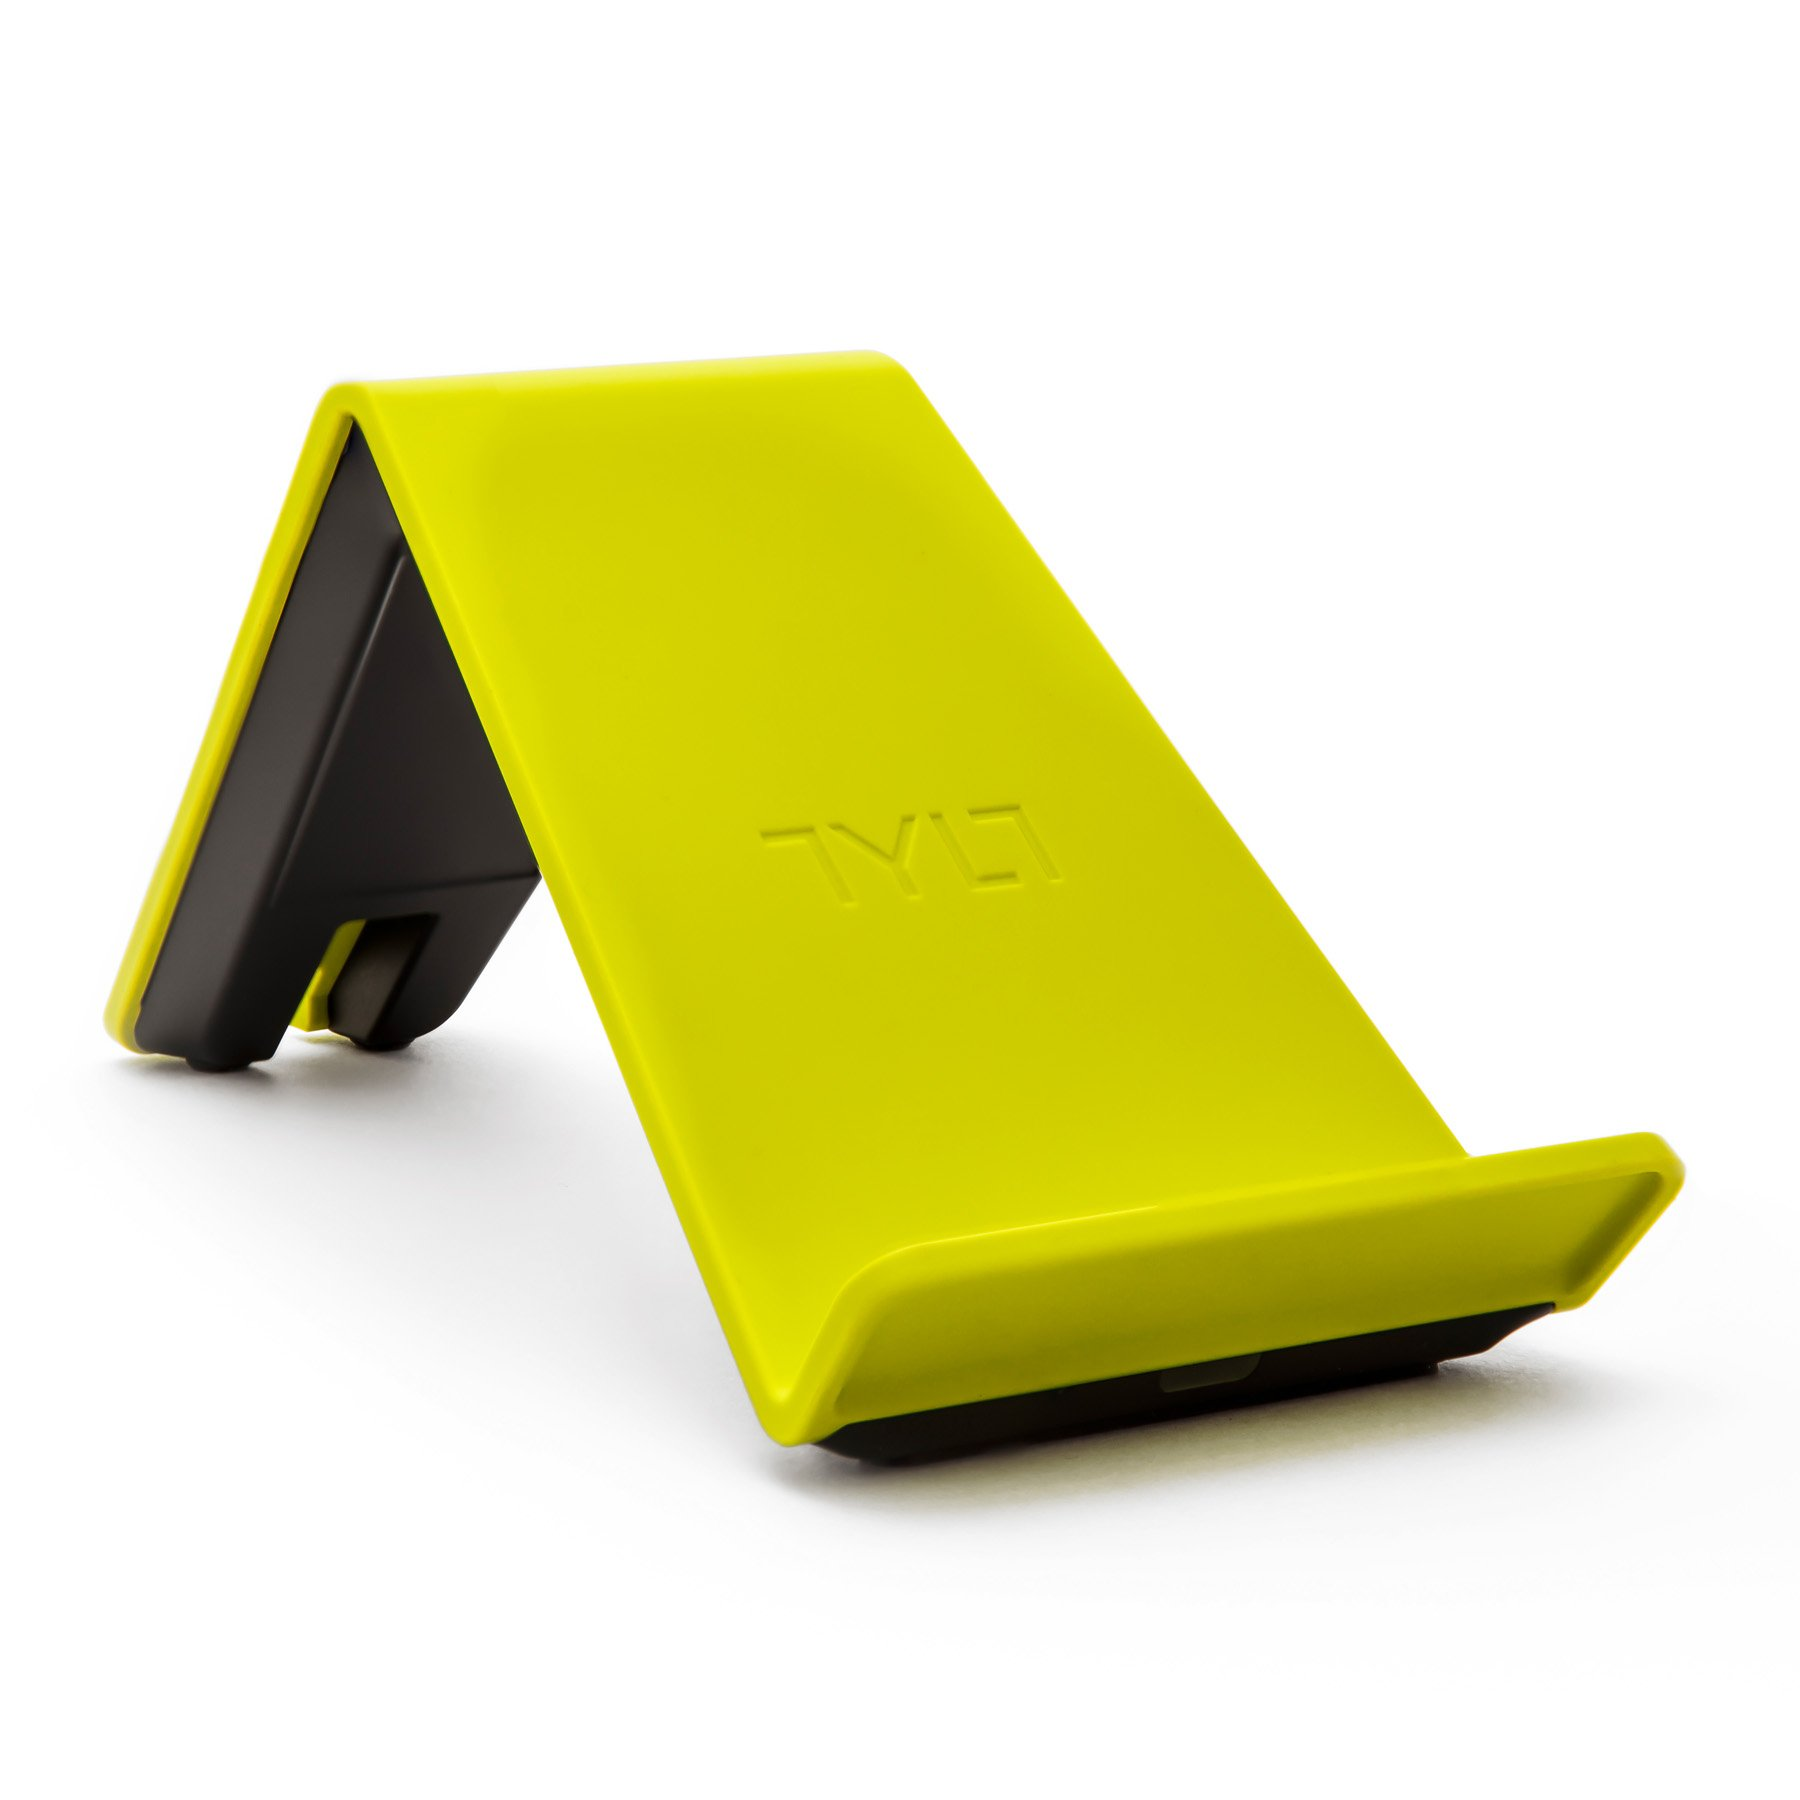 TYLT VU Qi Wireless Phone Charging Pad (Yellow, 3 Coil) Tilted Stand & Fast Battery Charger Station for Compatible iPhone, Samsung, Google, Android & Qi-Enabled Cell Phones